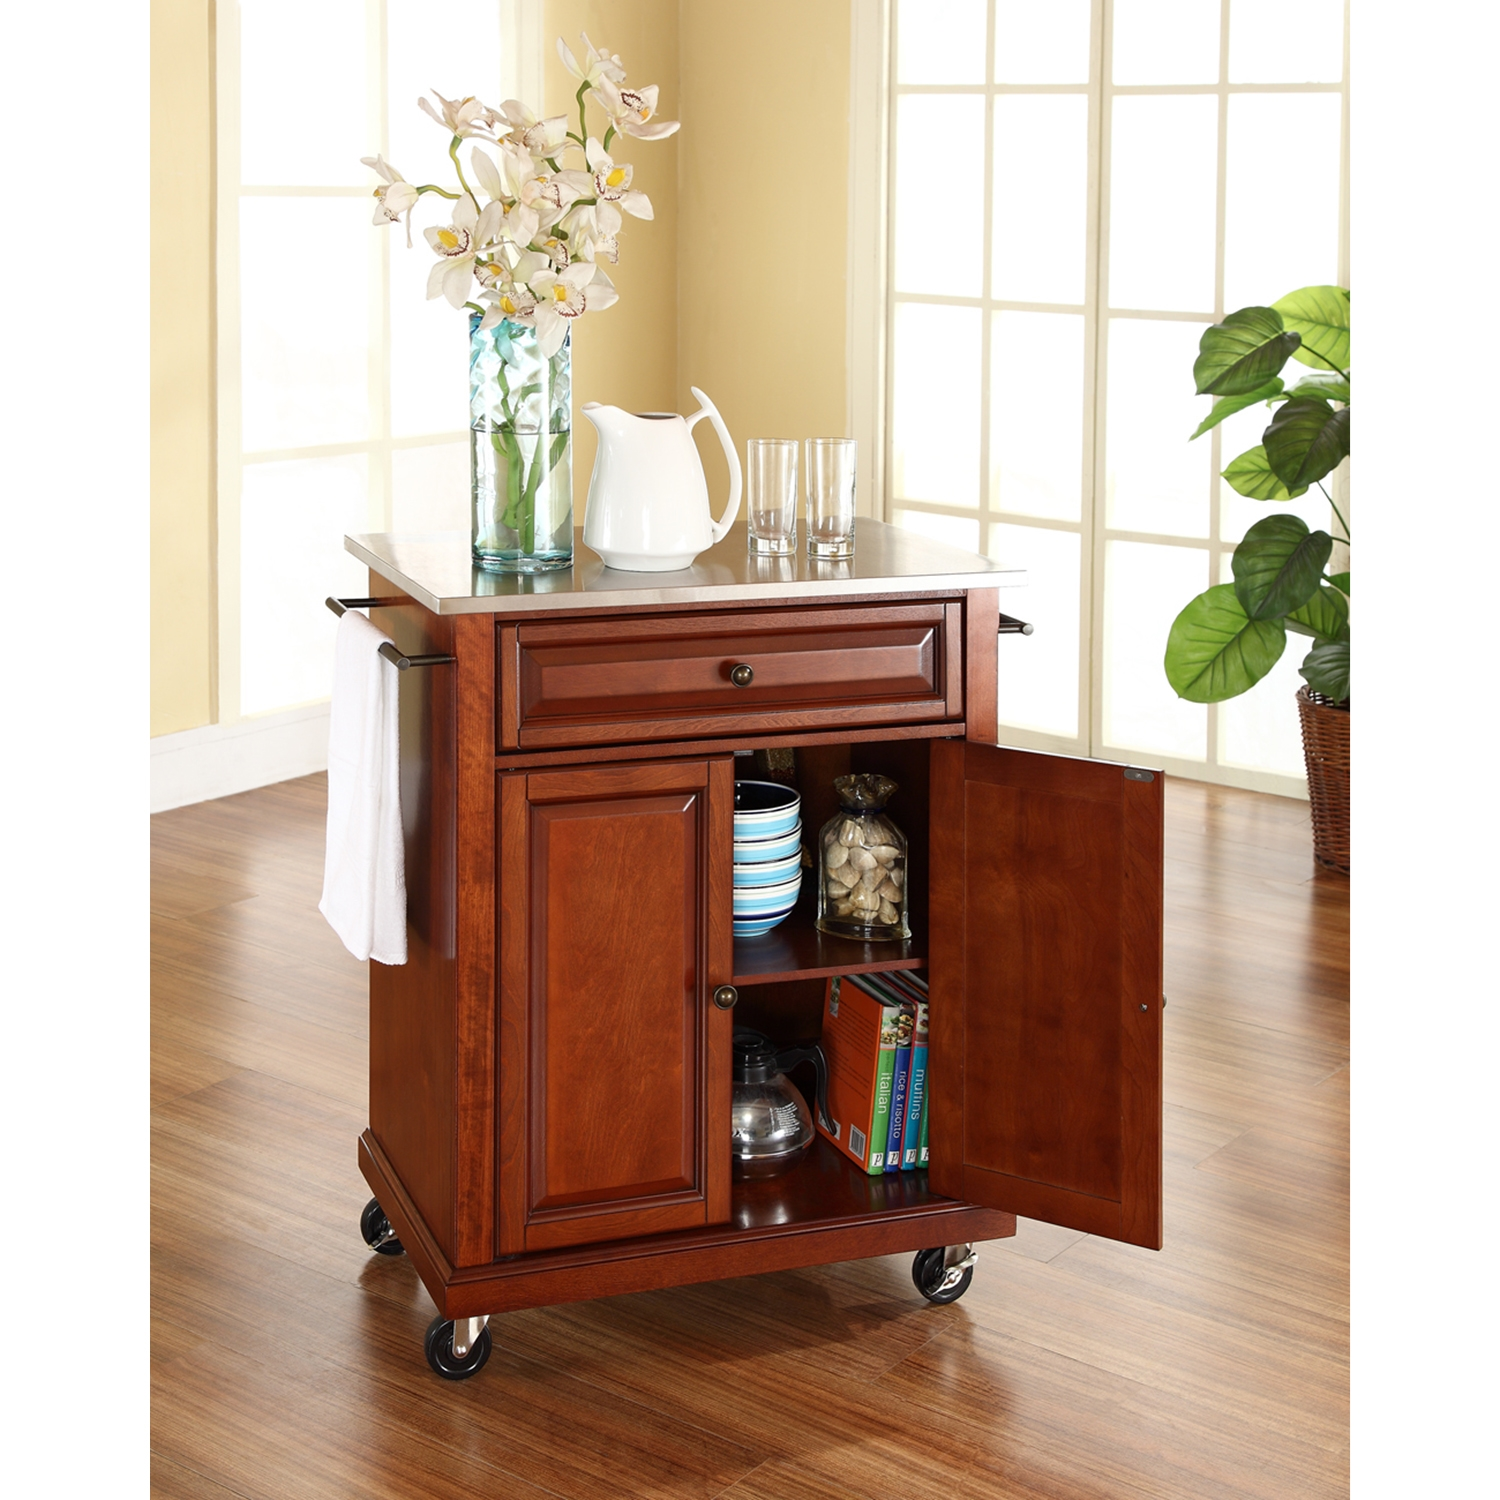 Stainless Steel Top Portable Kitchen Cart/Island - Casters, Classic Cherry - CROS-KF30022ECH